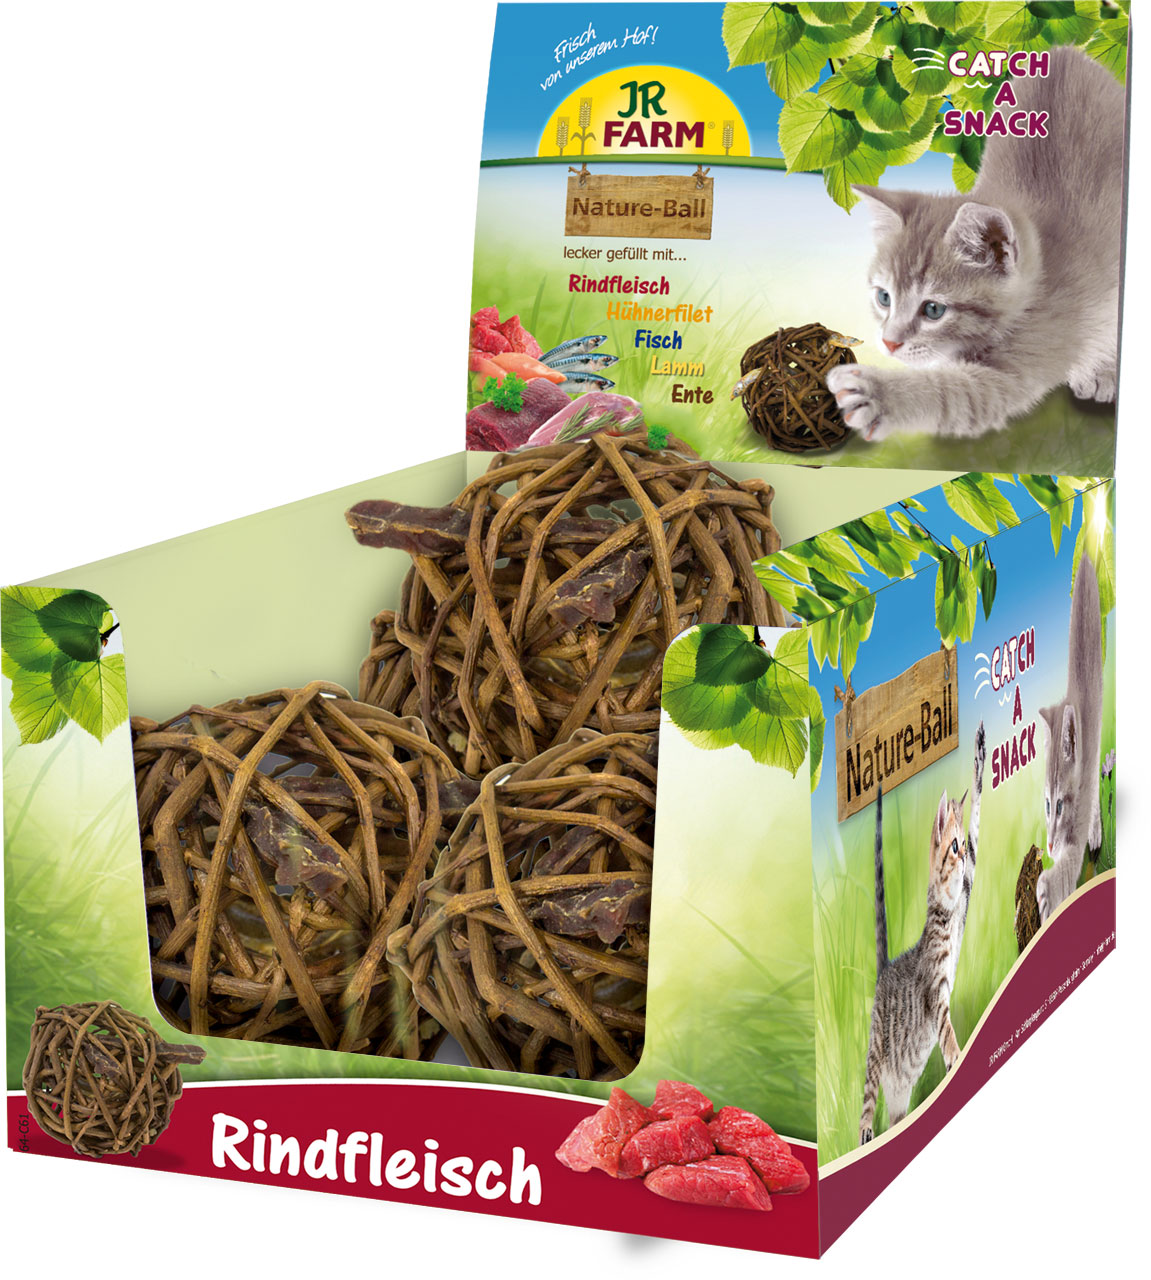 JR FARM Nature-Ball Rindfleisch